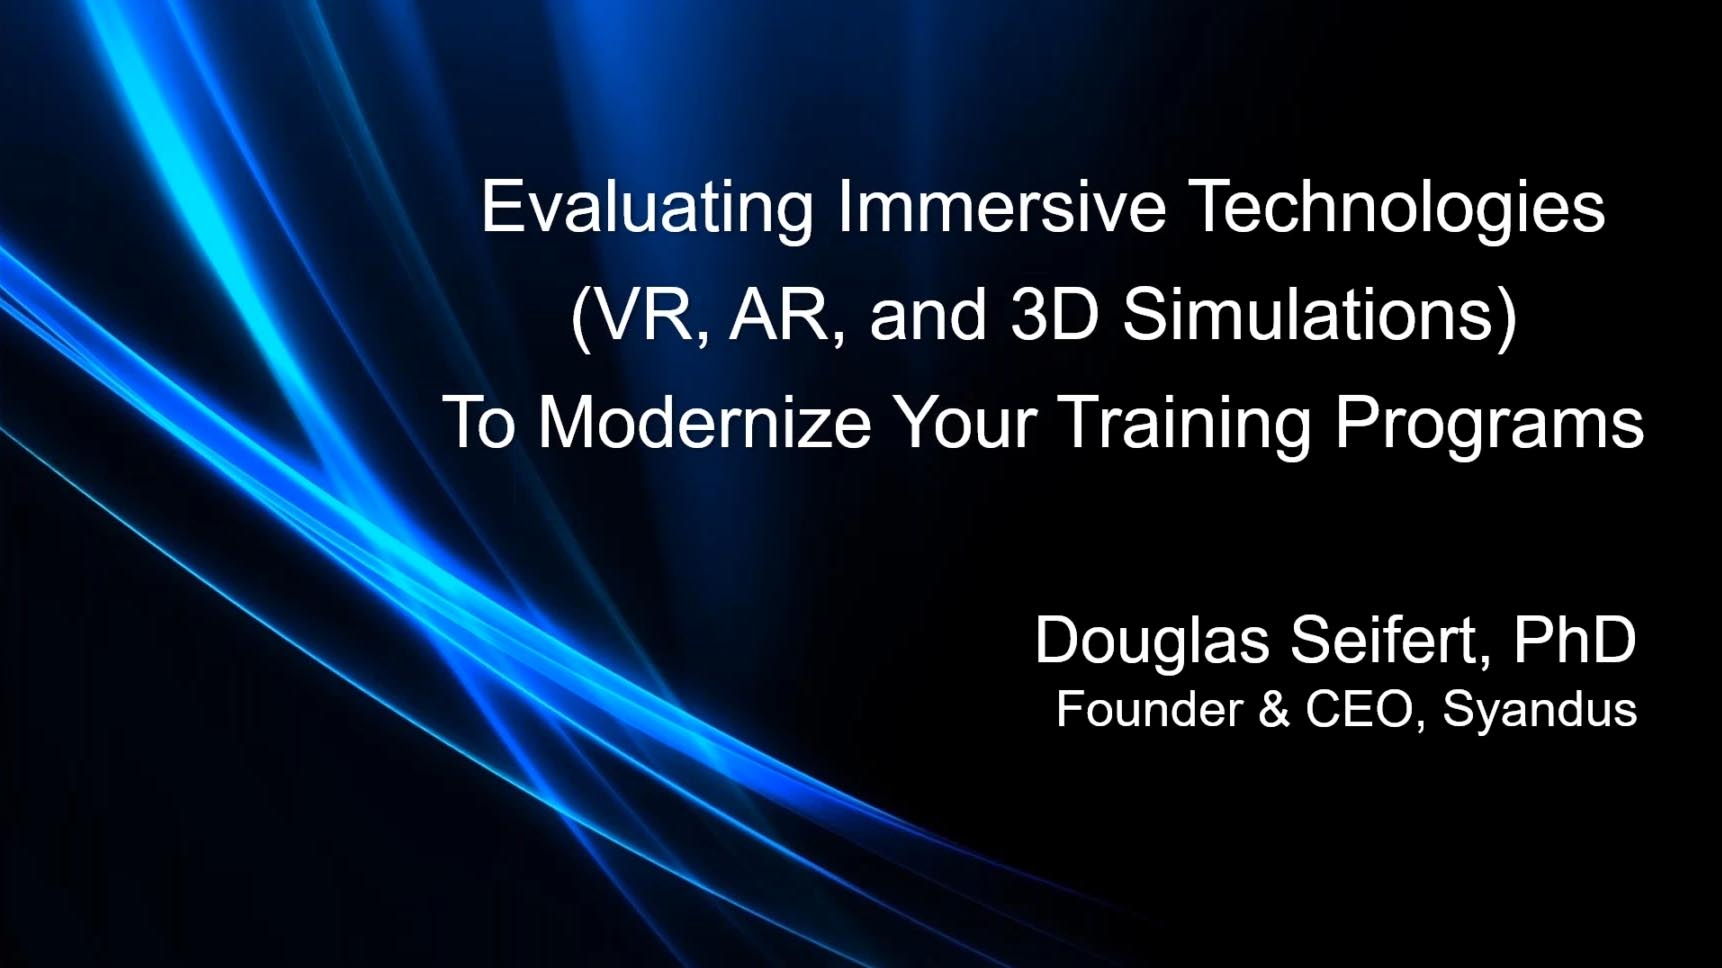 Evaluating Immersive Technologies